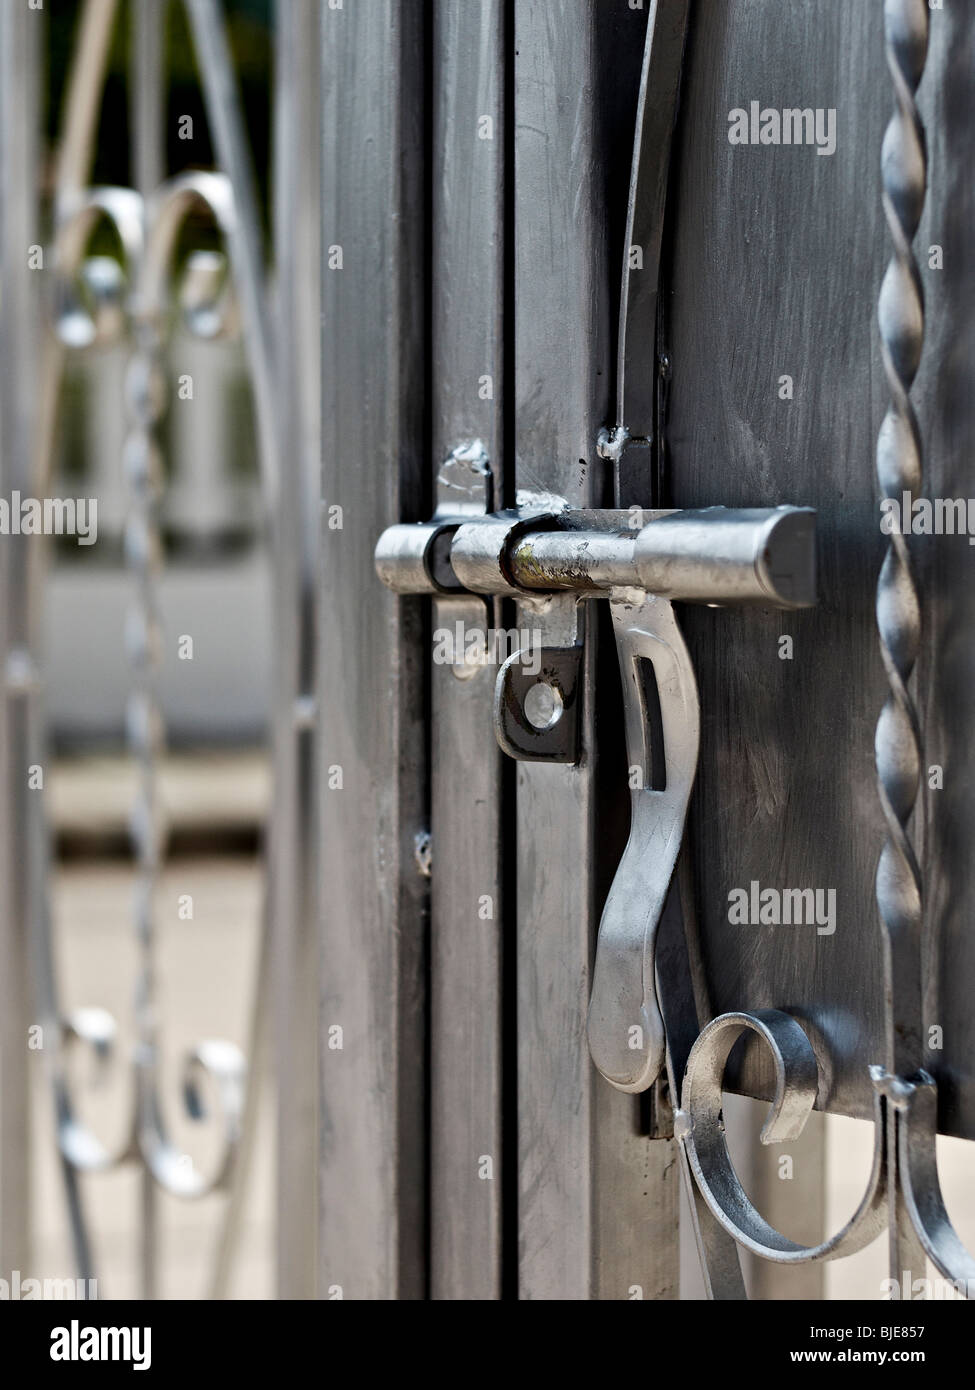 Steel Sliding Bolt Lock On A Security Gate Stock Photo